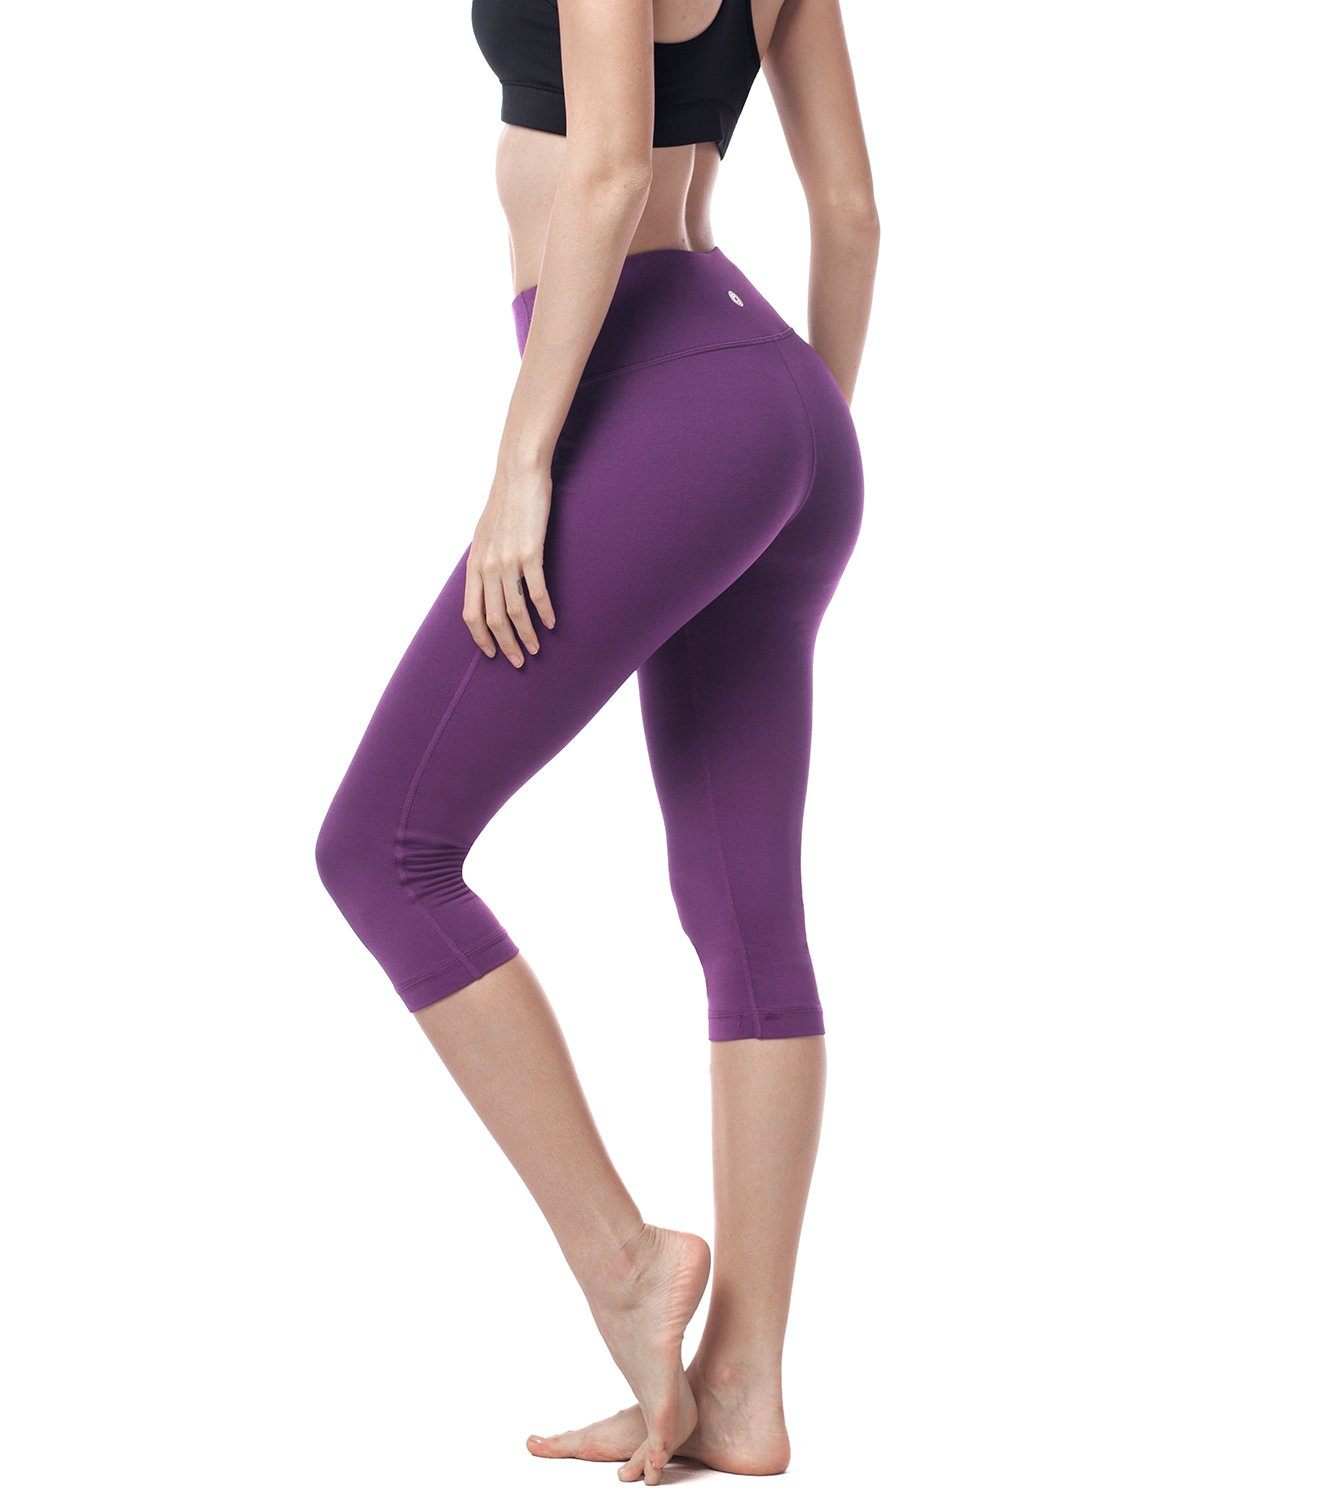 842139b38d Amazon.com  LAPASA Women Leggings Camel Toe-Free   Squat-Proof Sport Capri with  High Waist for Running Tights Plus L02  Sports   Outdoors